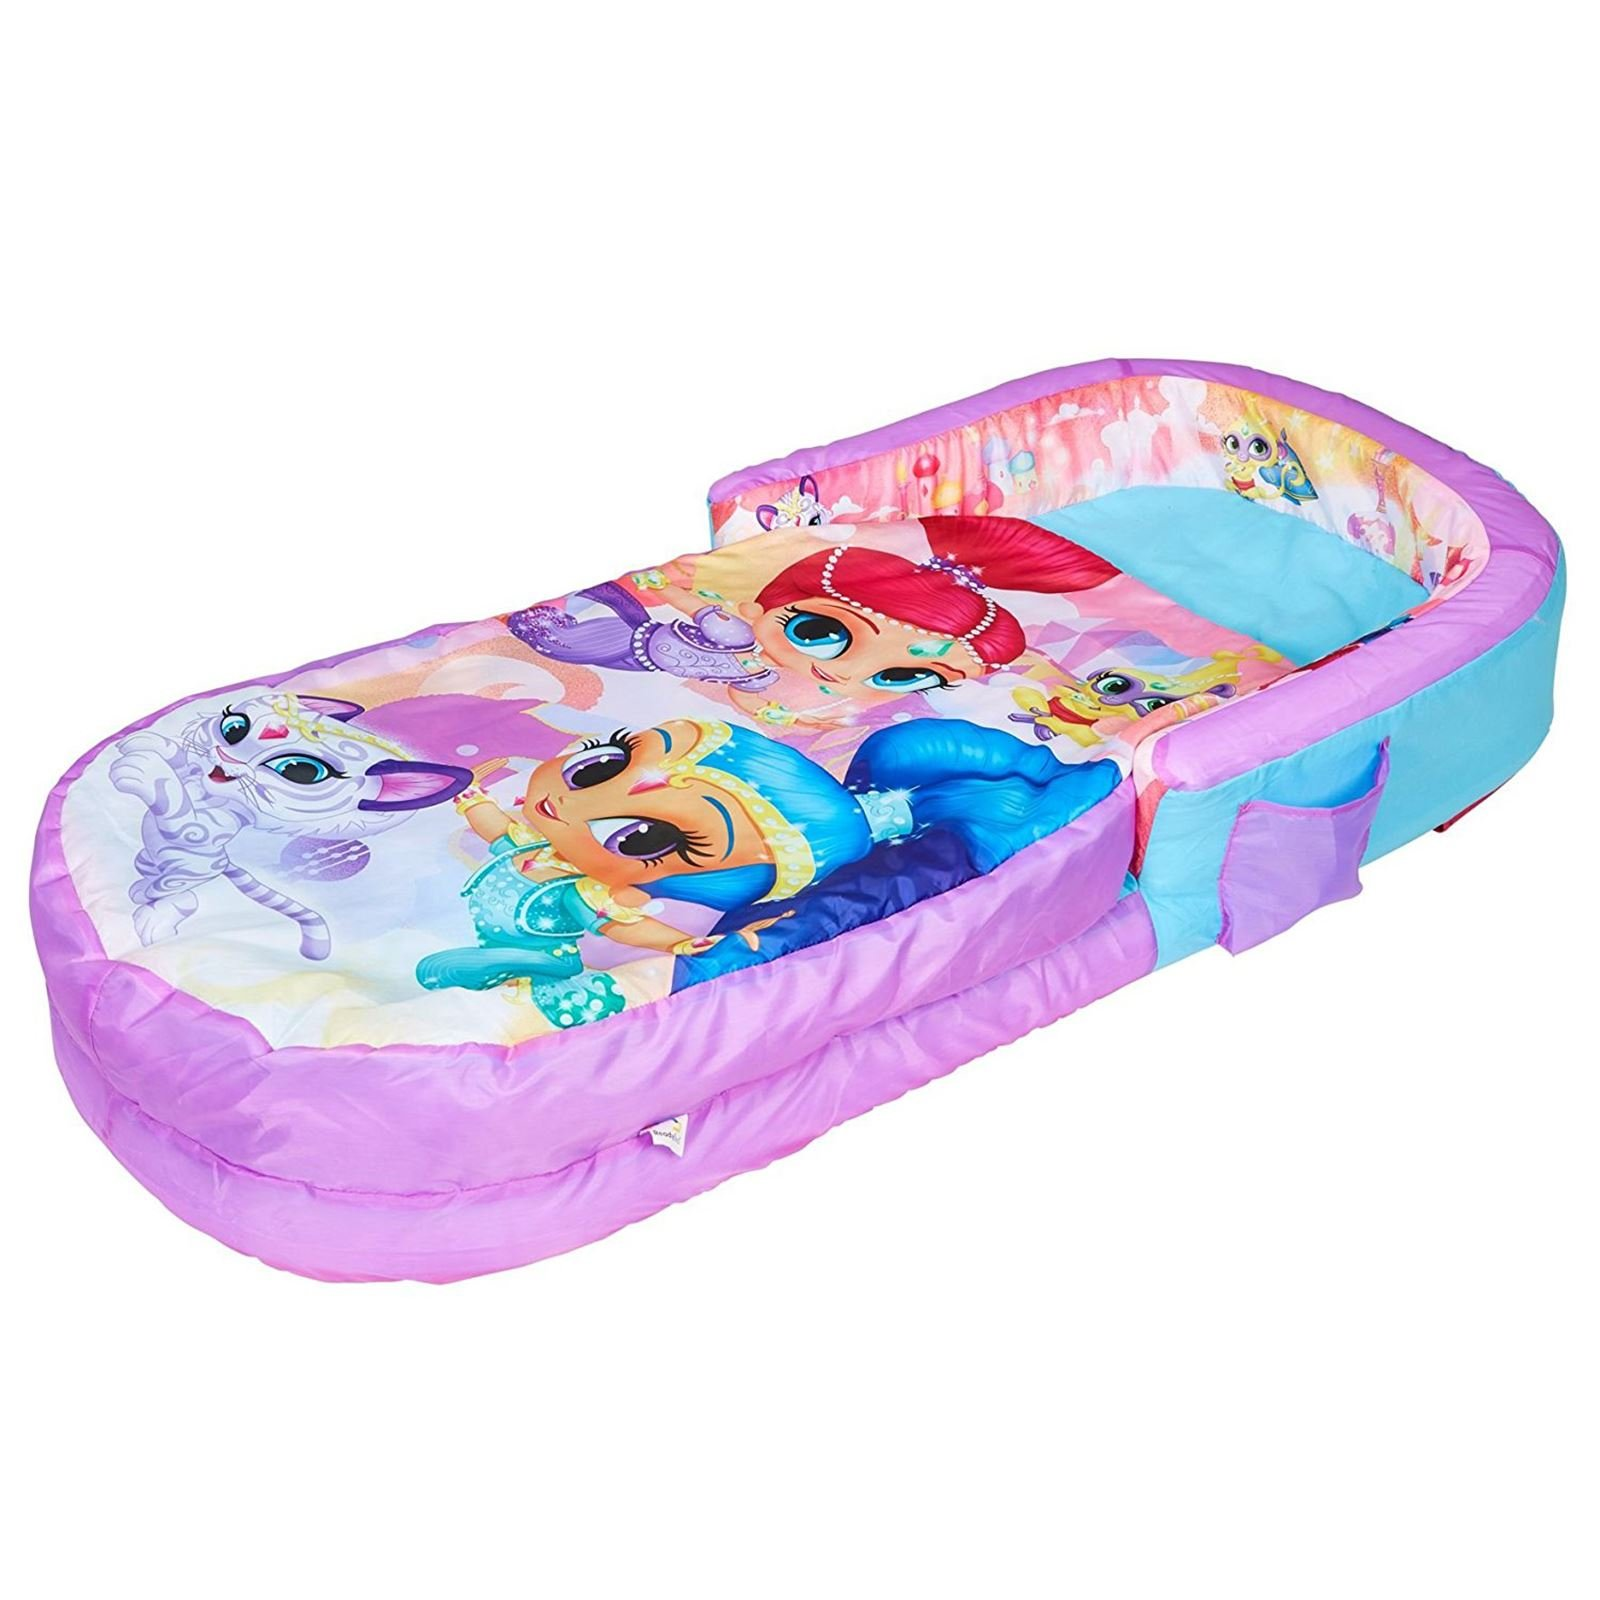 Shimmer and Shine My First Ready Bed